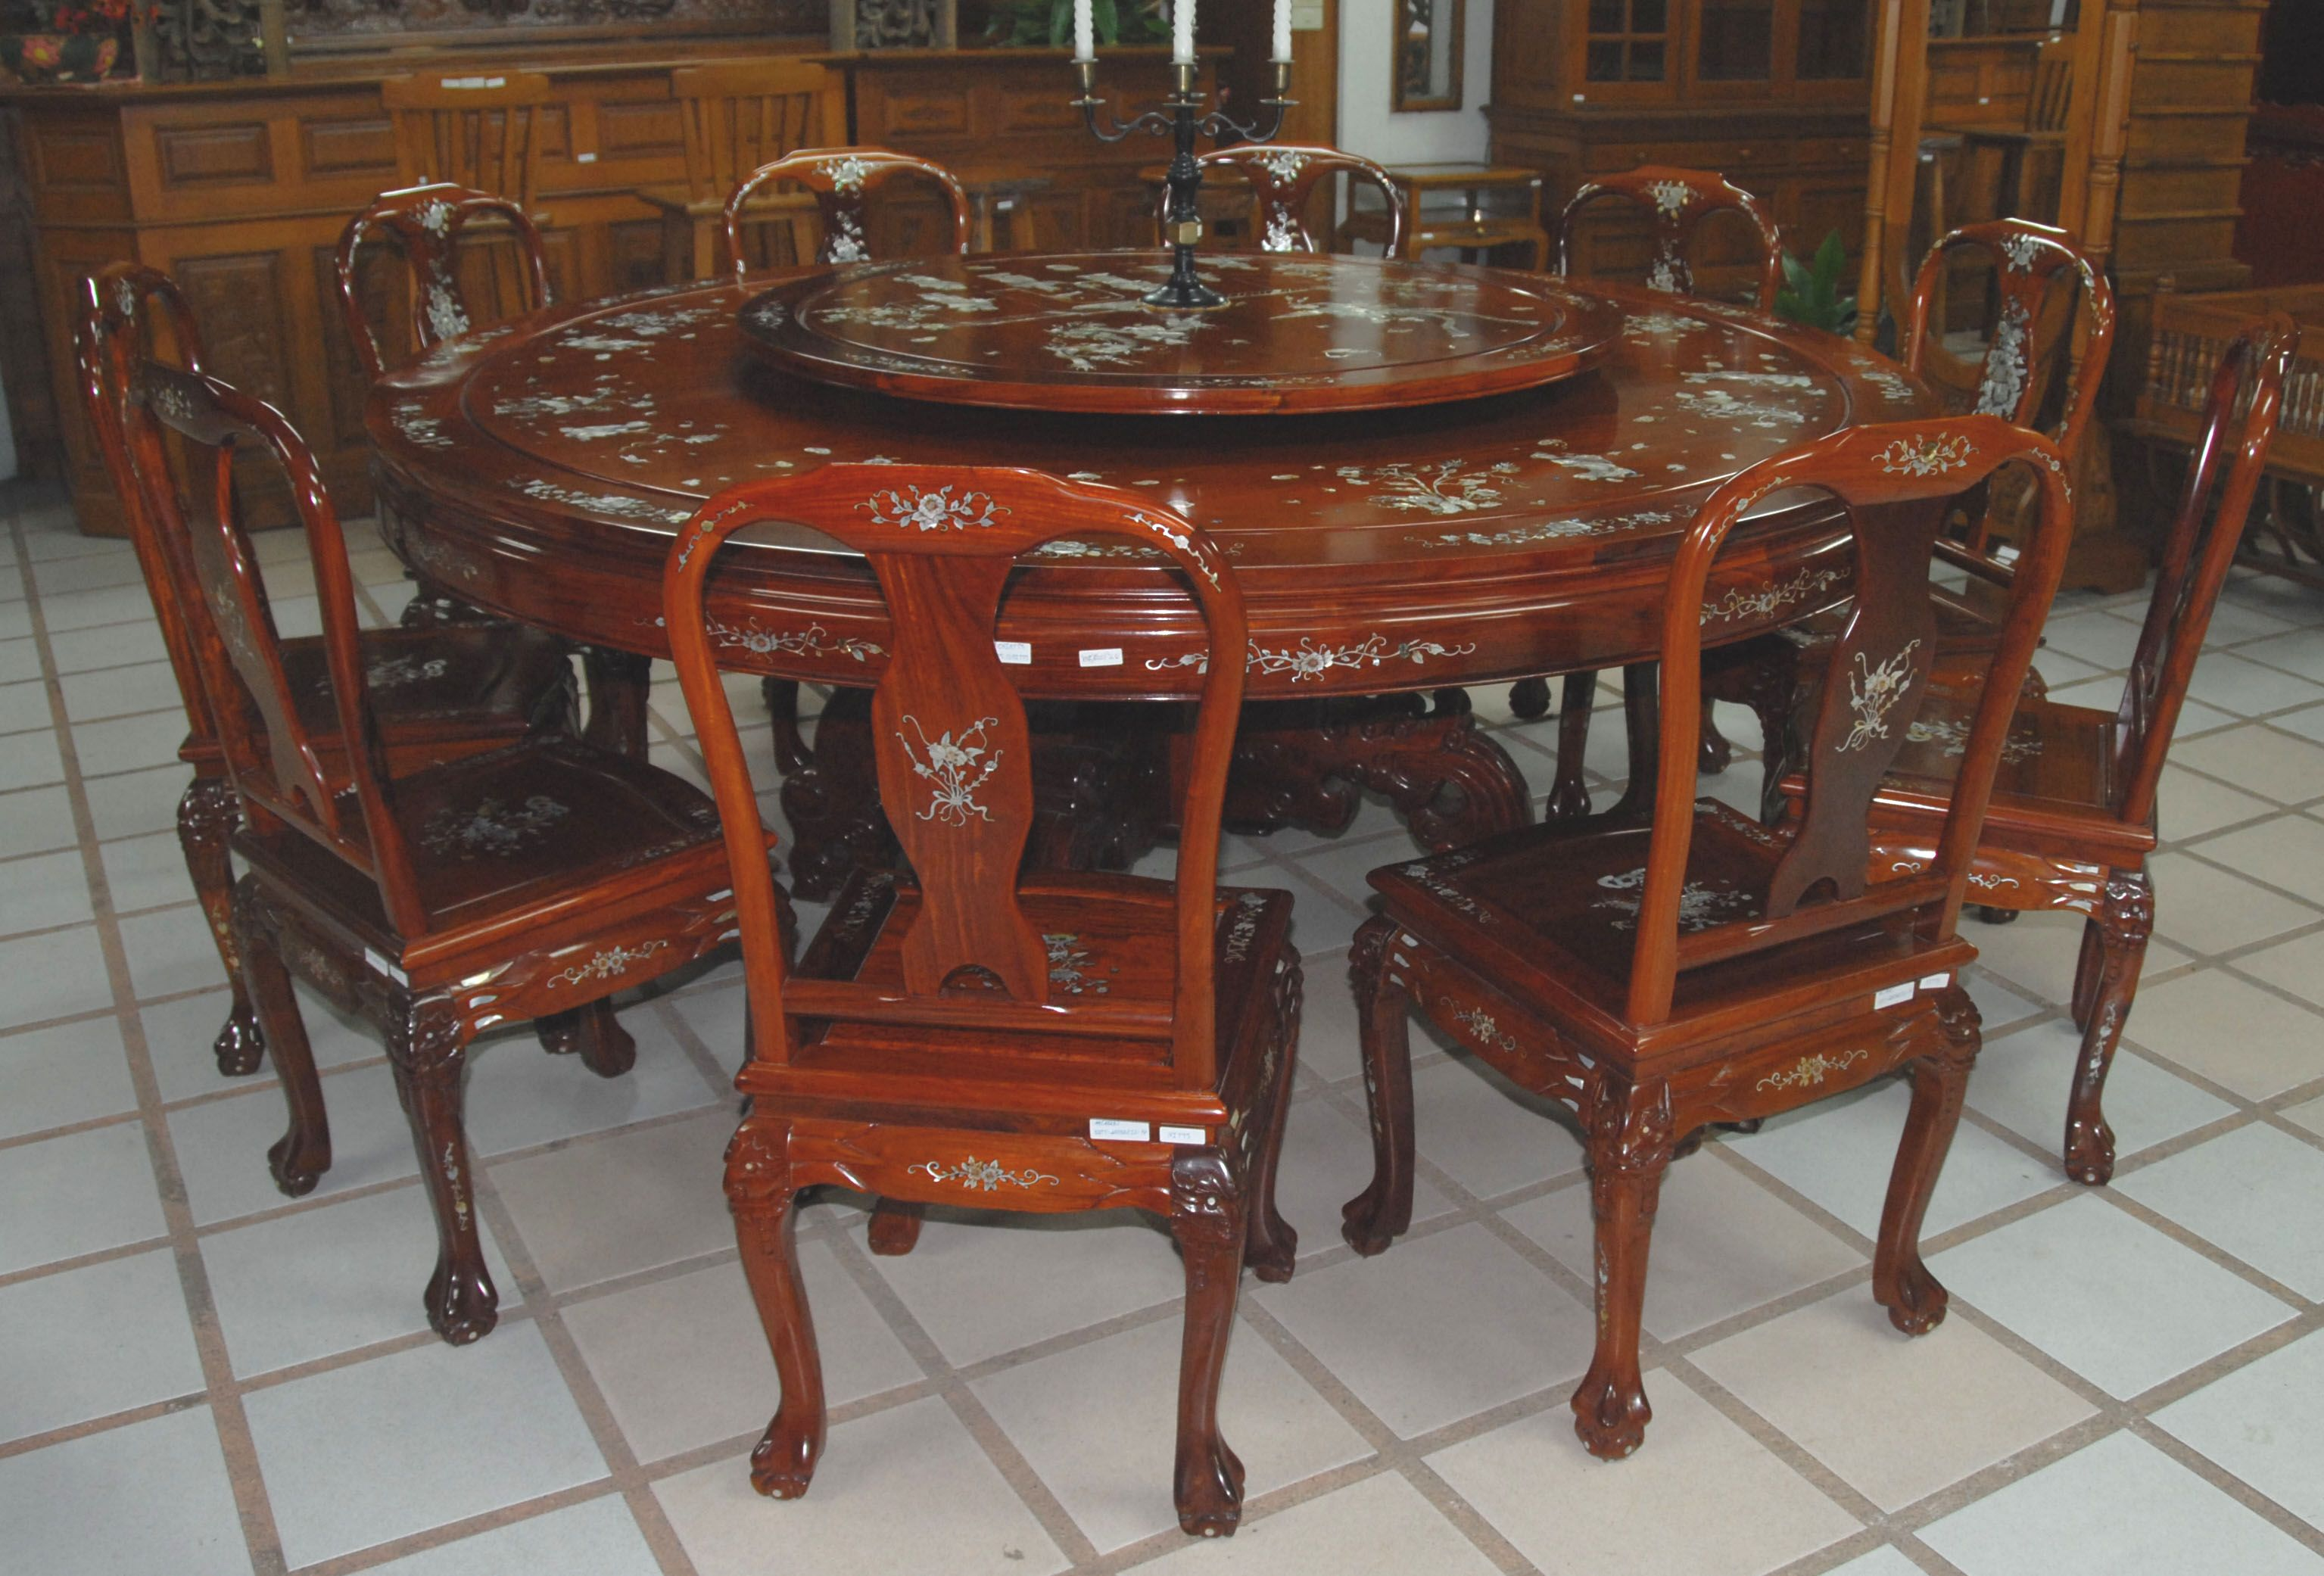 Asiatische Betten Rosewood Mother Of Pearl Furniture Rosewood Furniture Inlaid